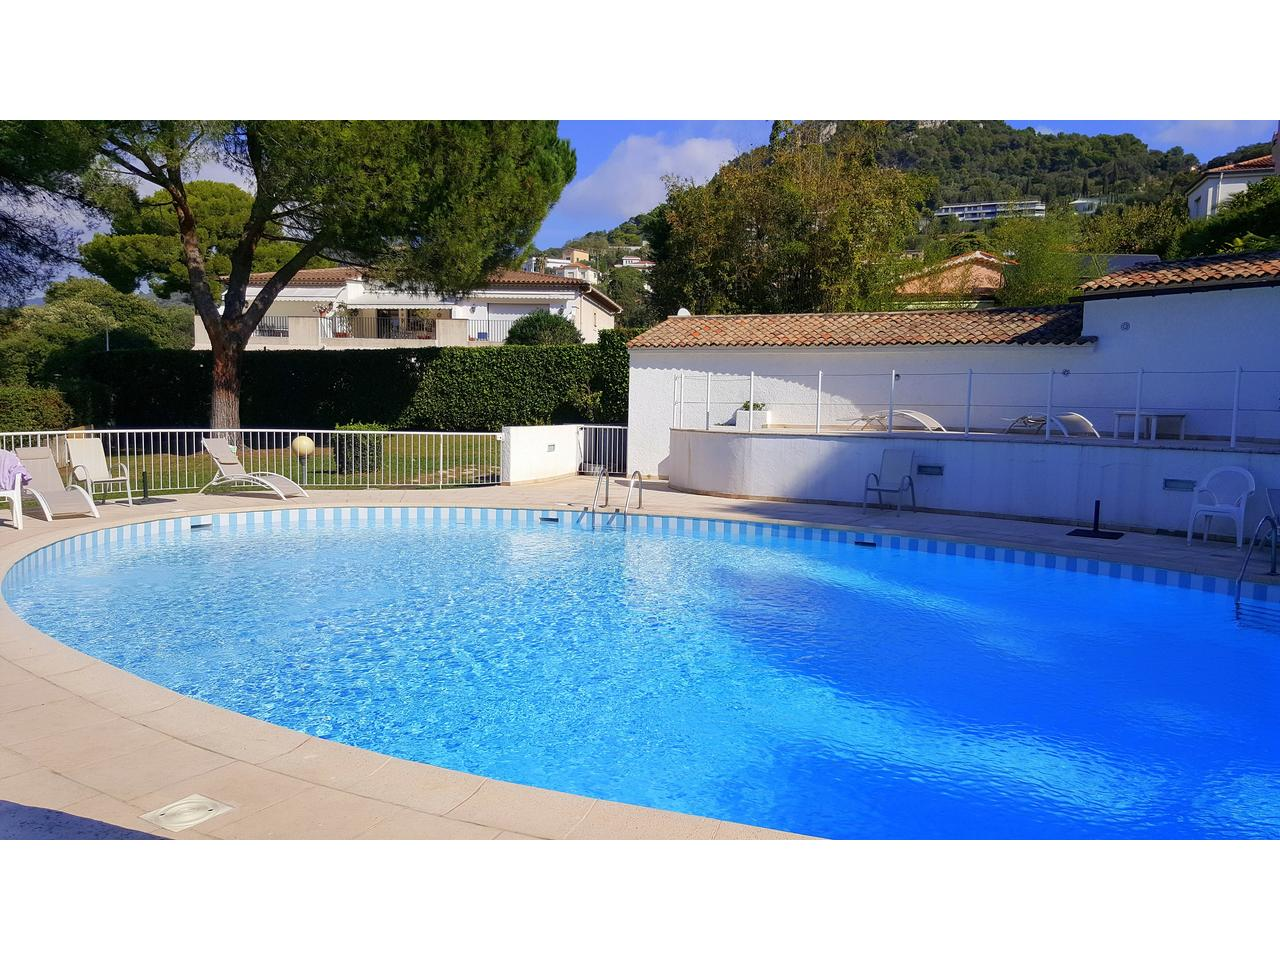 Immobilier nice vue mer appartement nice studio a vendre for Piscine nice